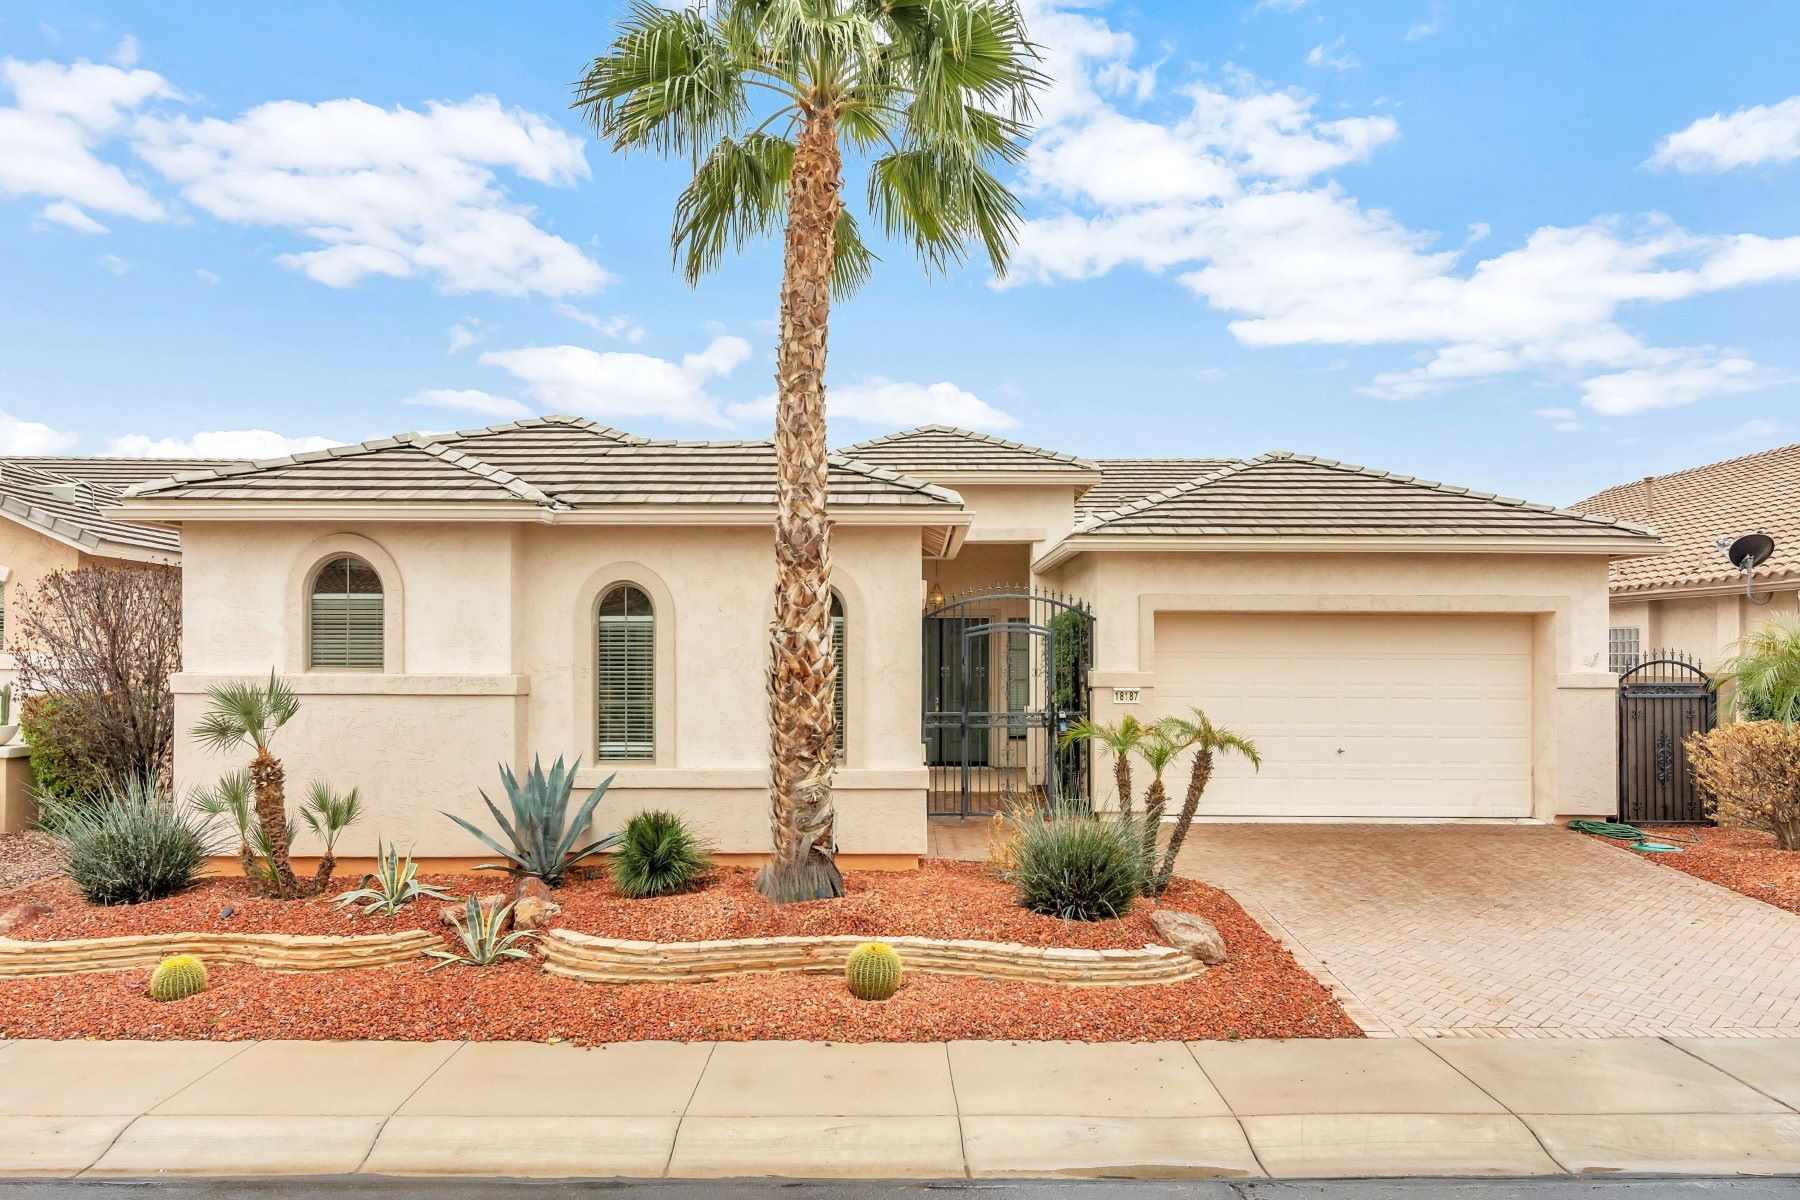 Single Family Homes for Sale at Arizona Traditions 18187 W STINSON DR Surprise, Arizona 85374 United States